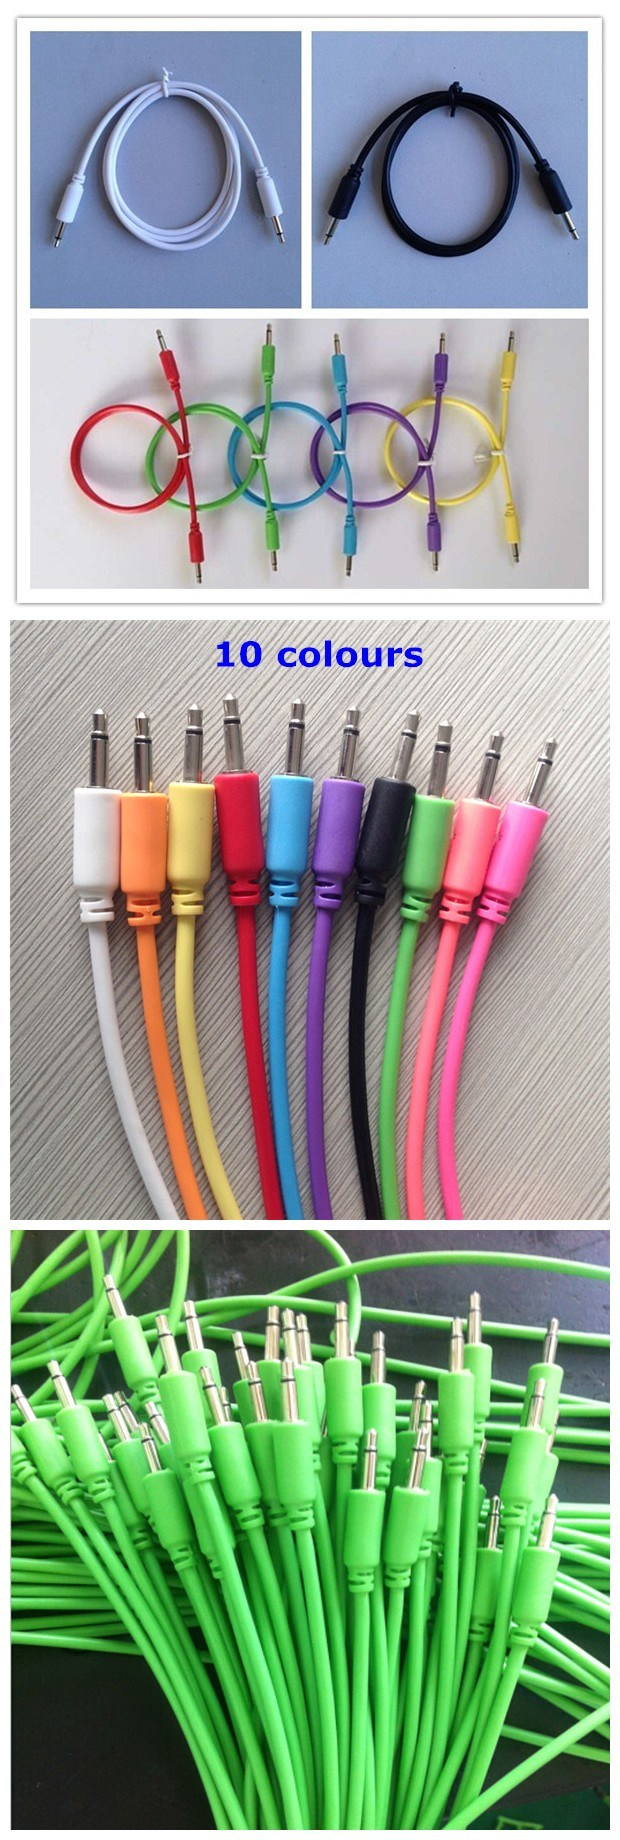 3.5mm Male to Male Mono Audio Video Cable